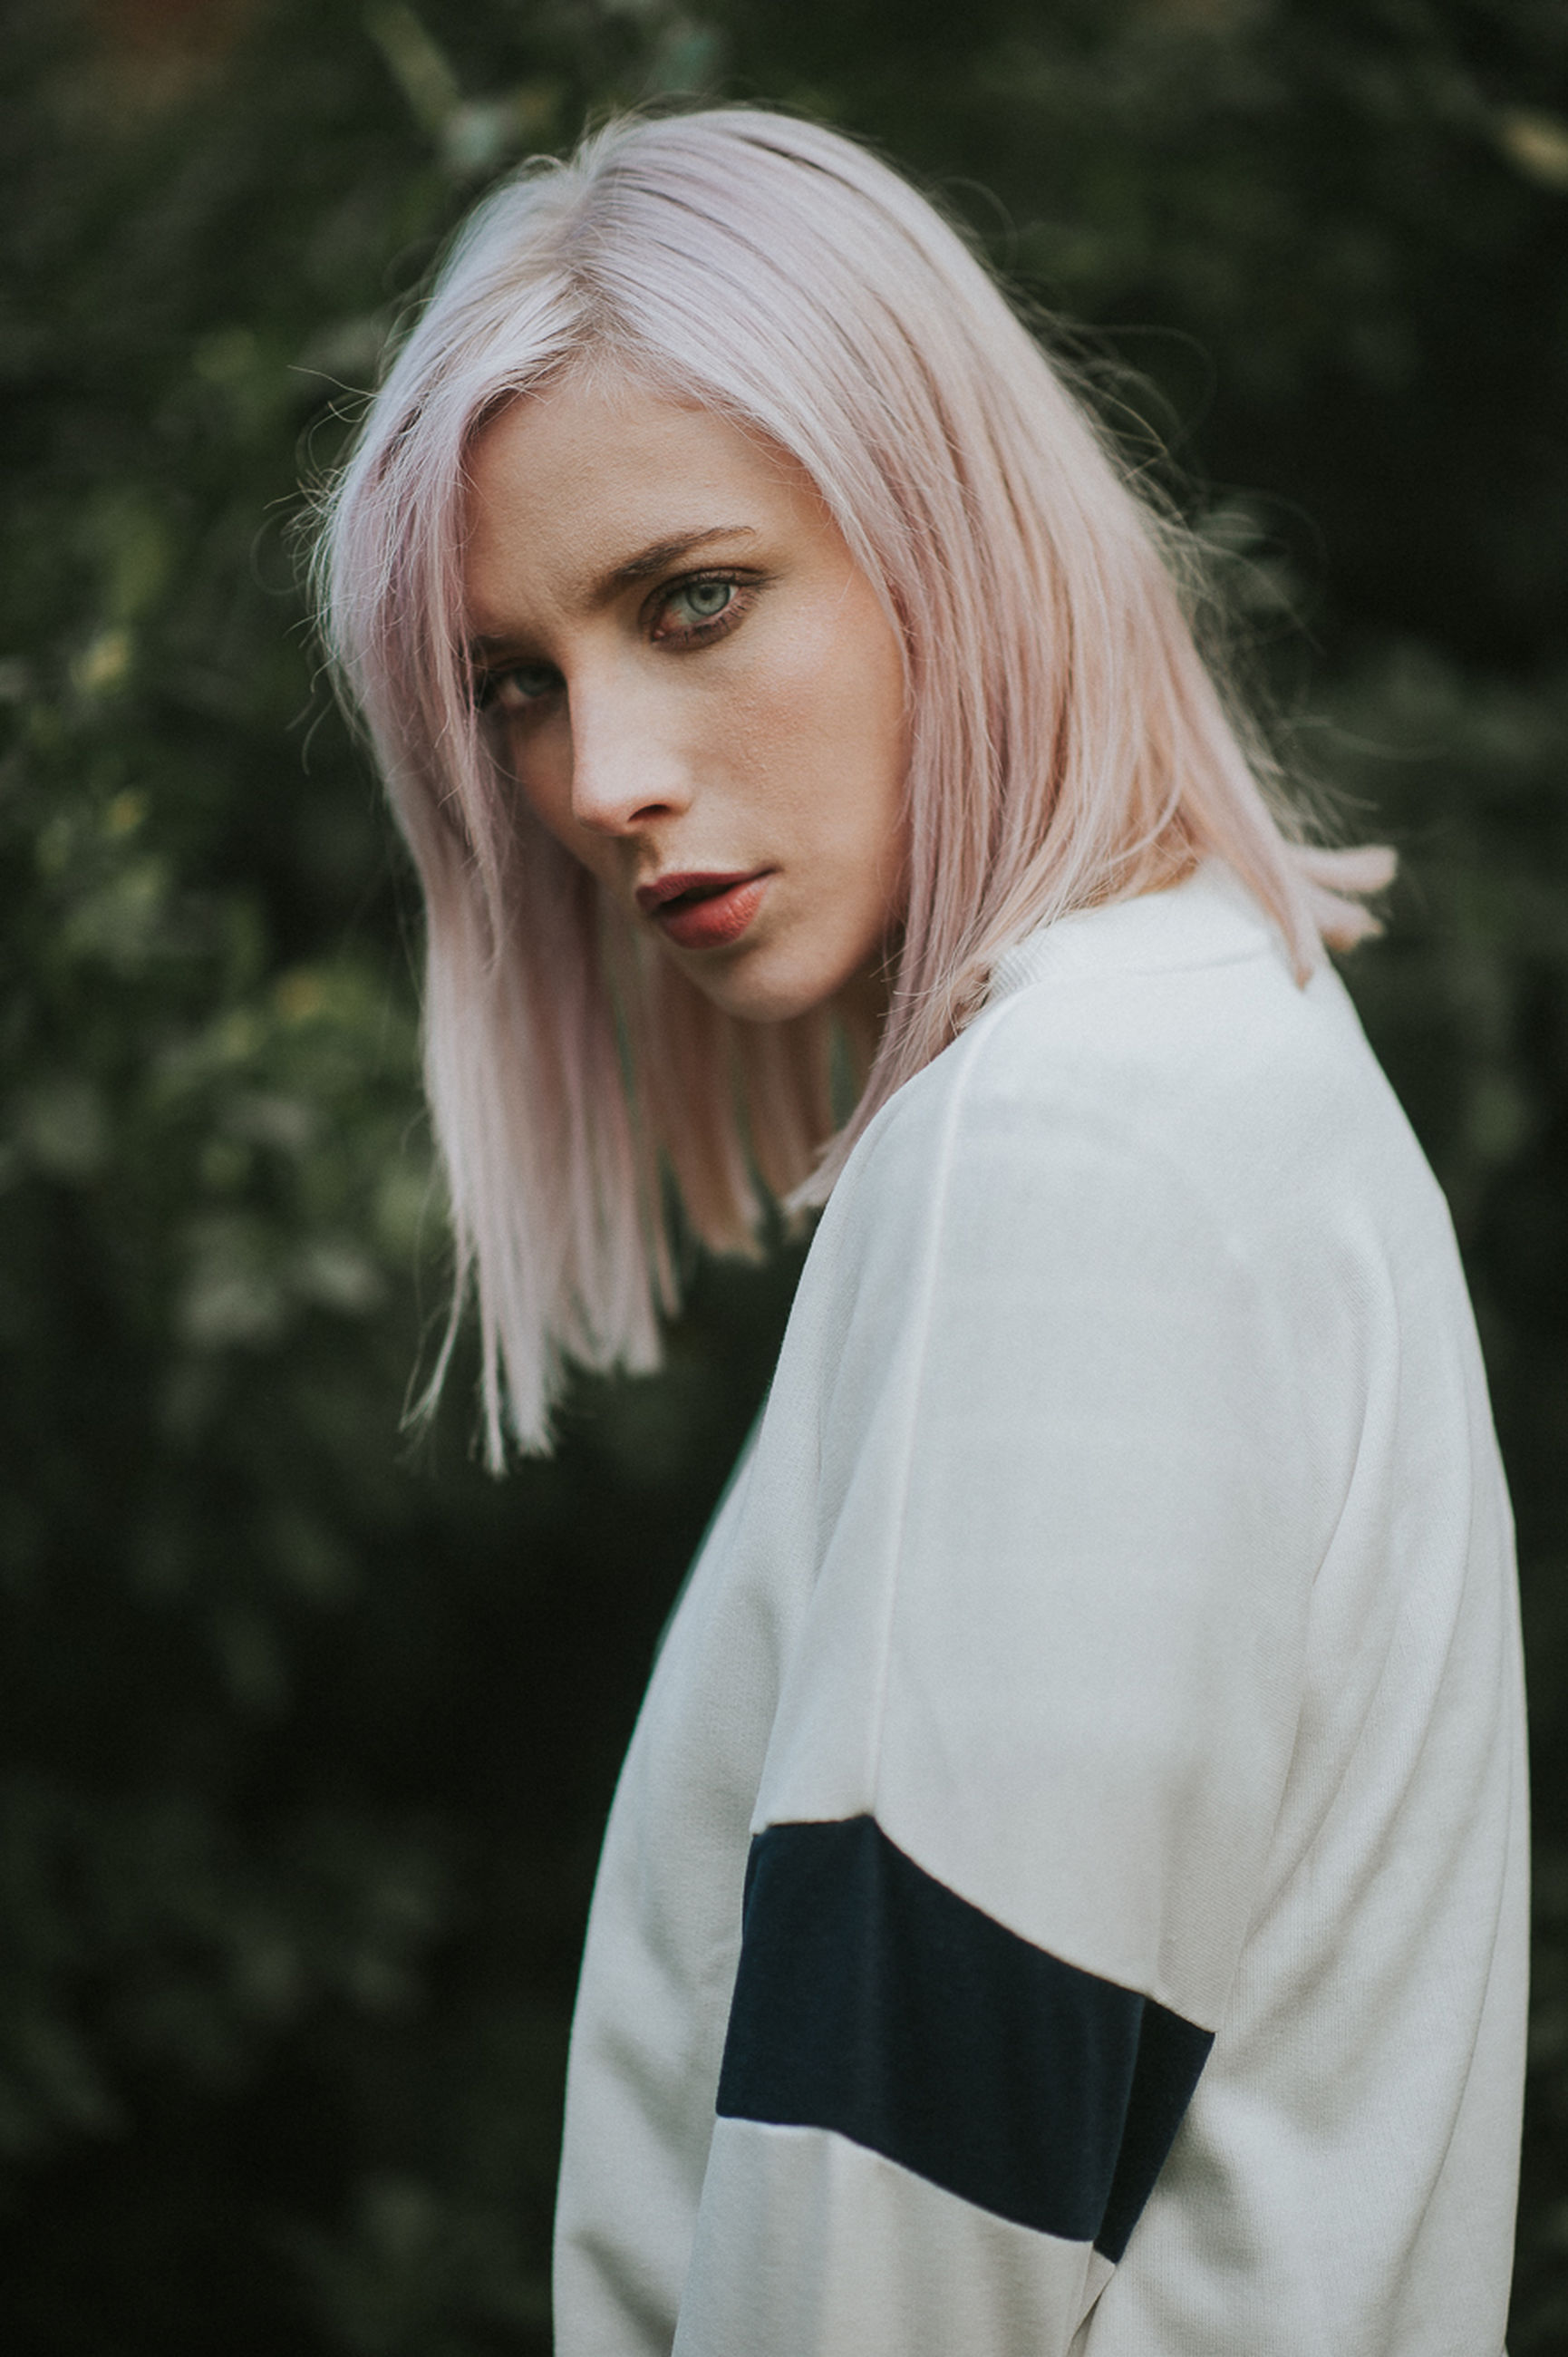 young adult, blond hair, young women, portrait, beauty, fashion, one person, nature, one young woman only, focus on foreground, close-up, outdoors, headshot, adult, people, only women, standing, beautiful woman, dyed hair, one woman only, day, adults only, tree, human body part